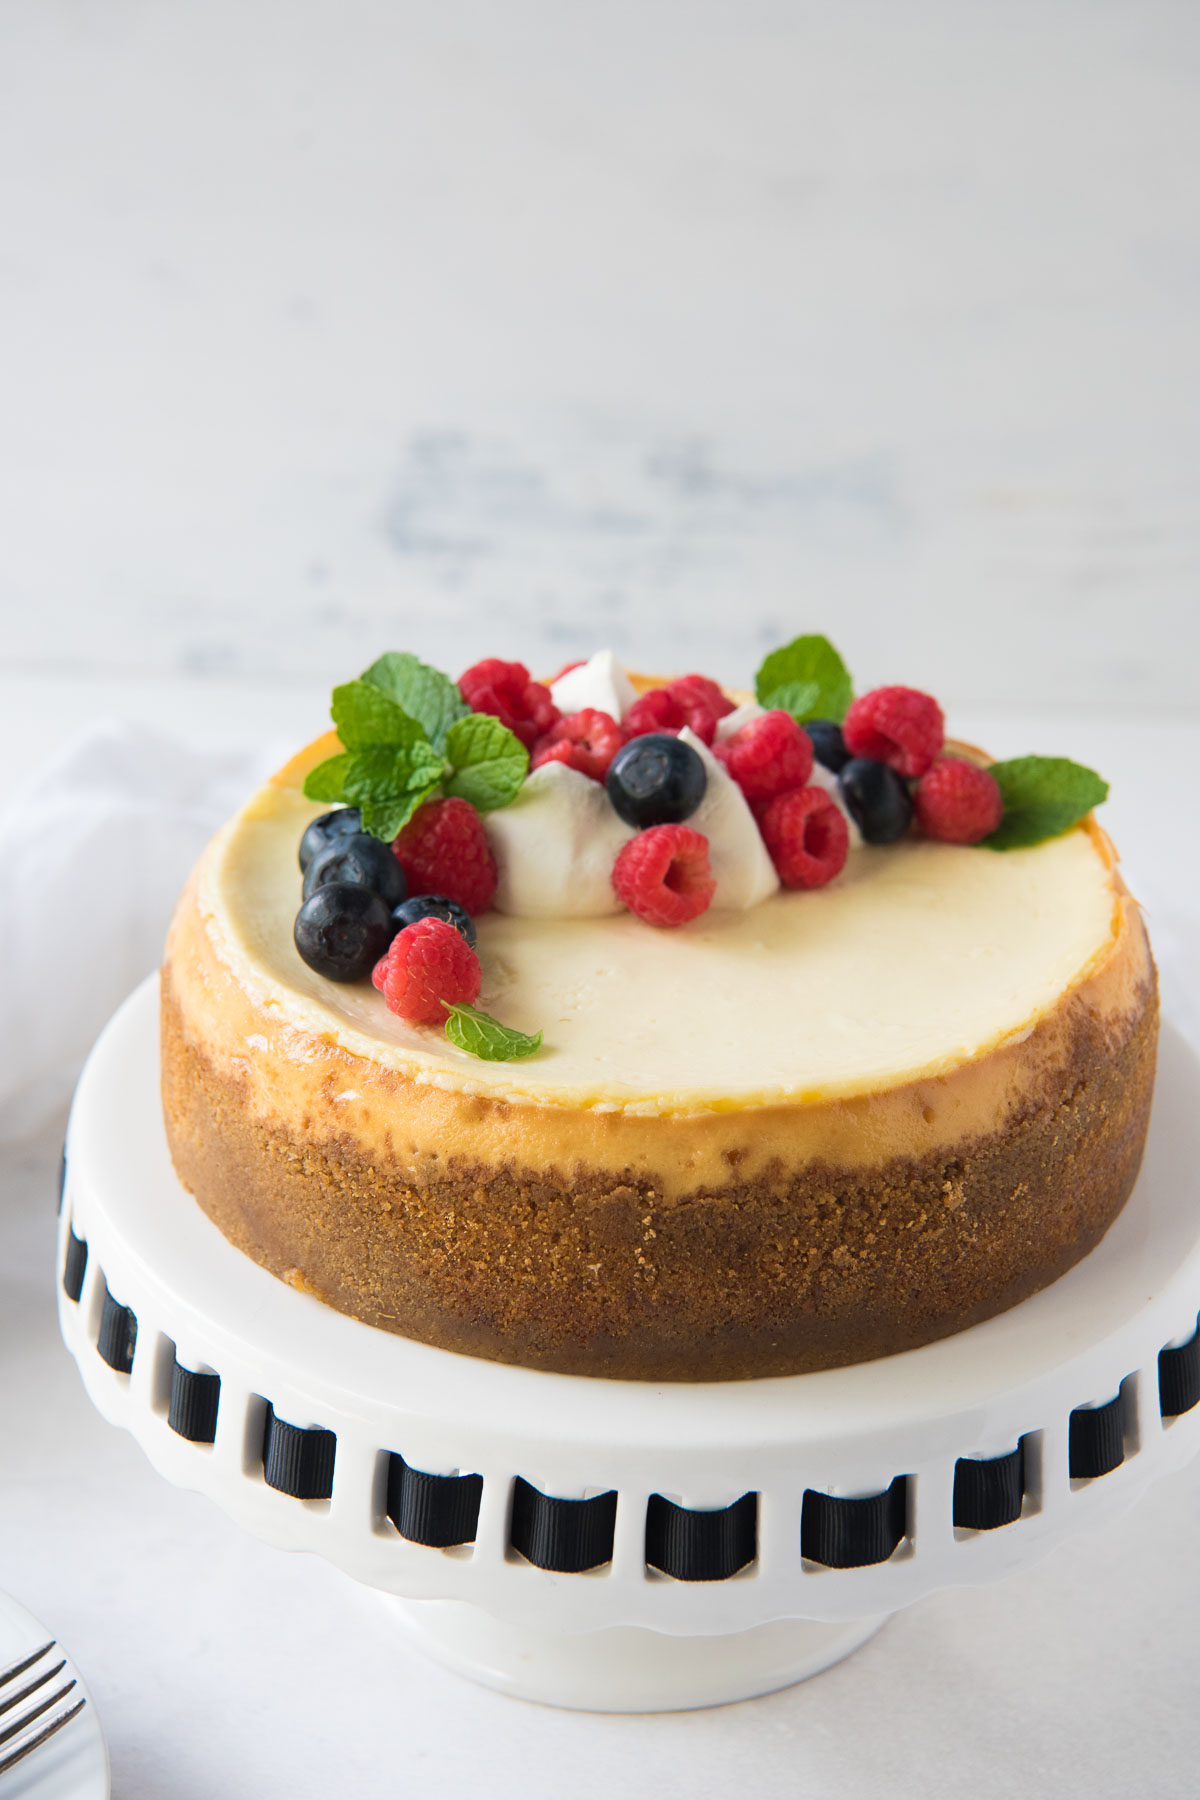 cheesecake topped with whipped cream and fresh berries on a cake stand